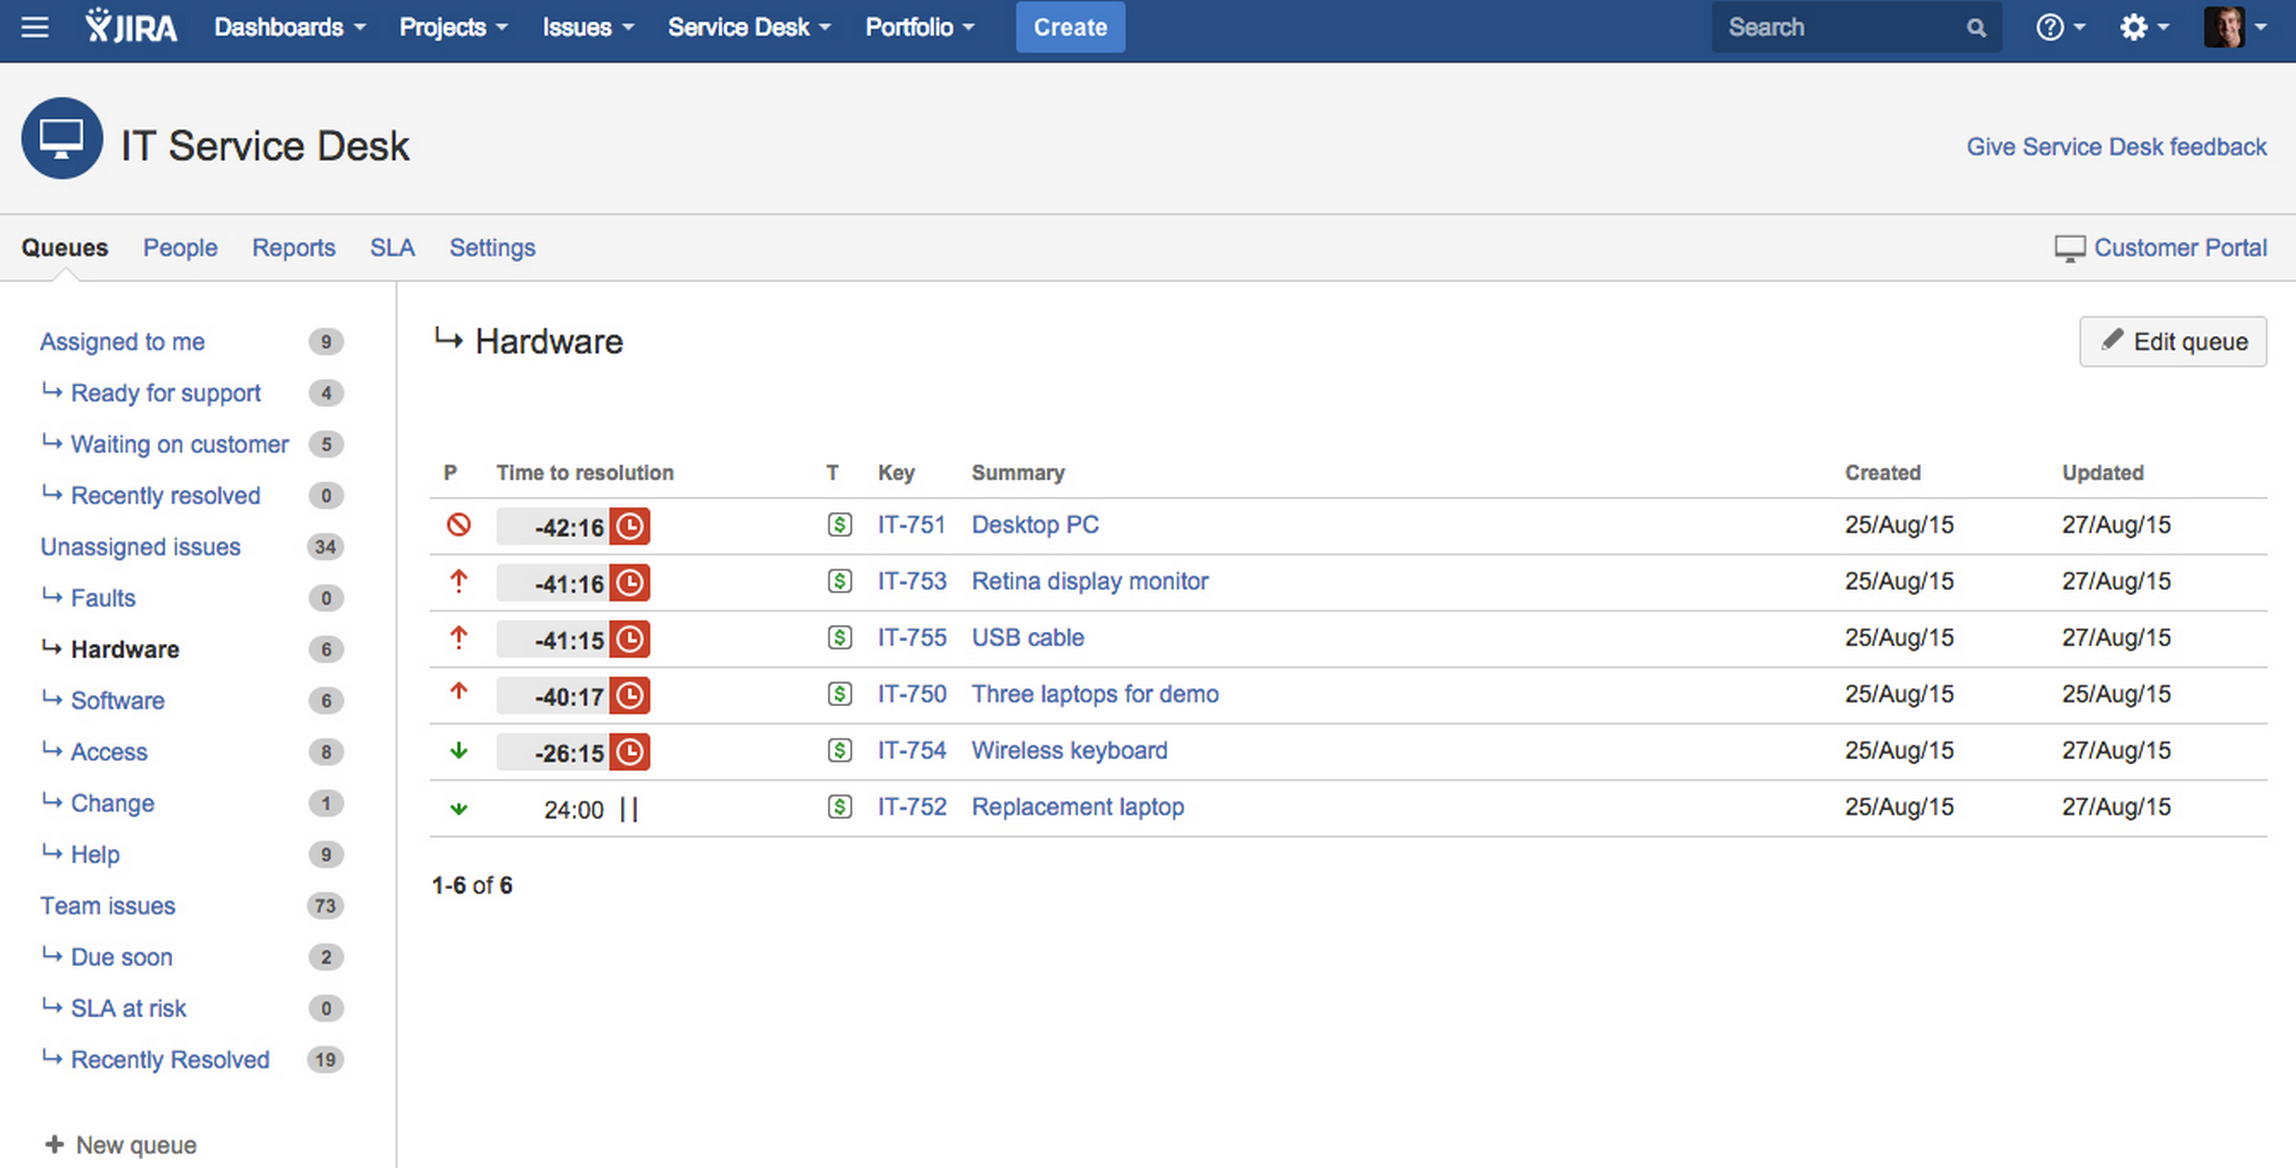 JIRA Service Desk Queues